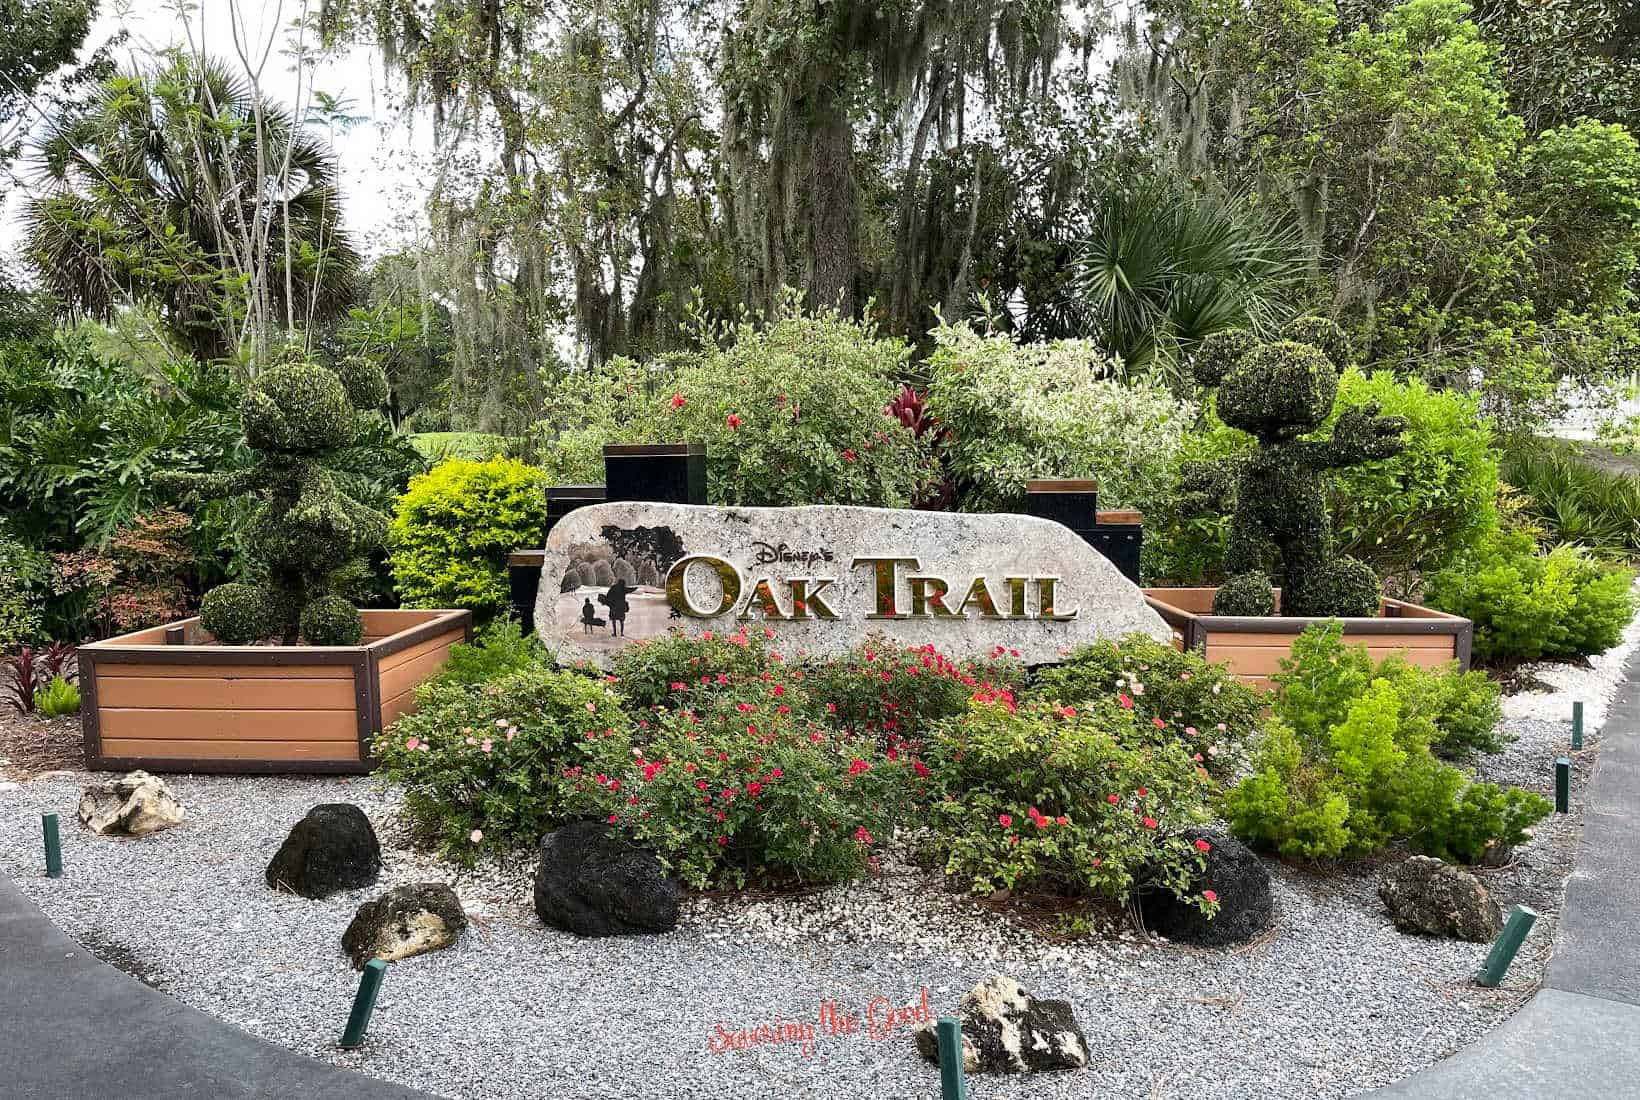 Disney's Oak Trail entrance with mickey and minnie topiaries